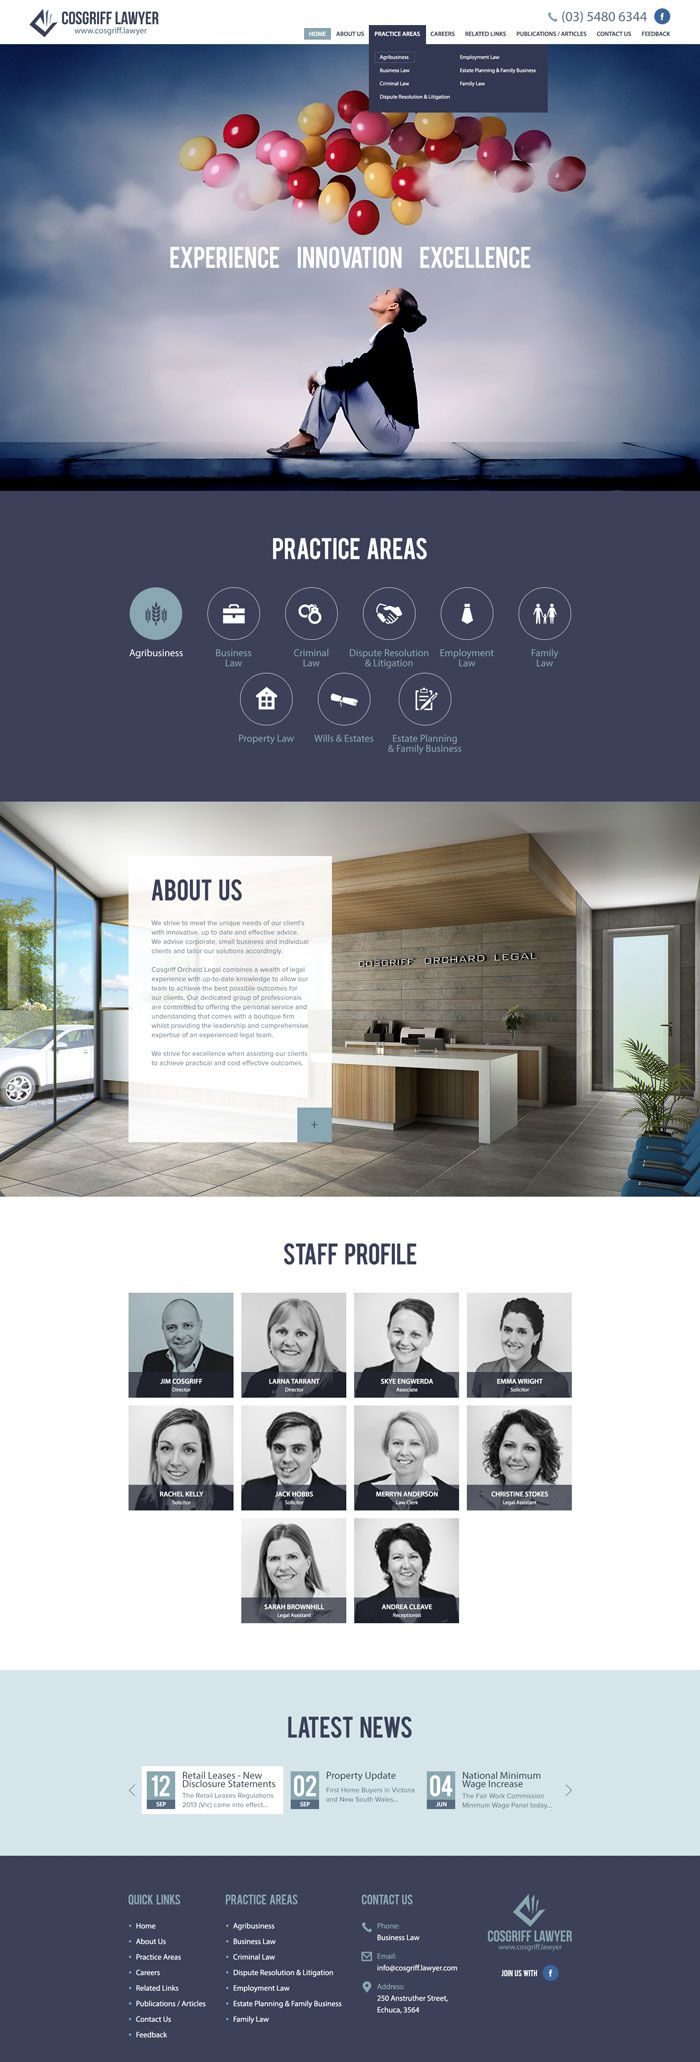 22 Best Law Firm Websites Inspiration